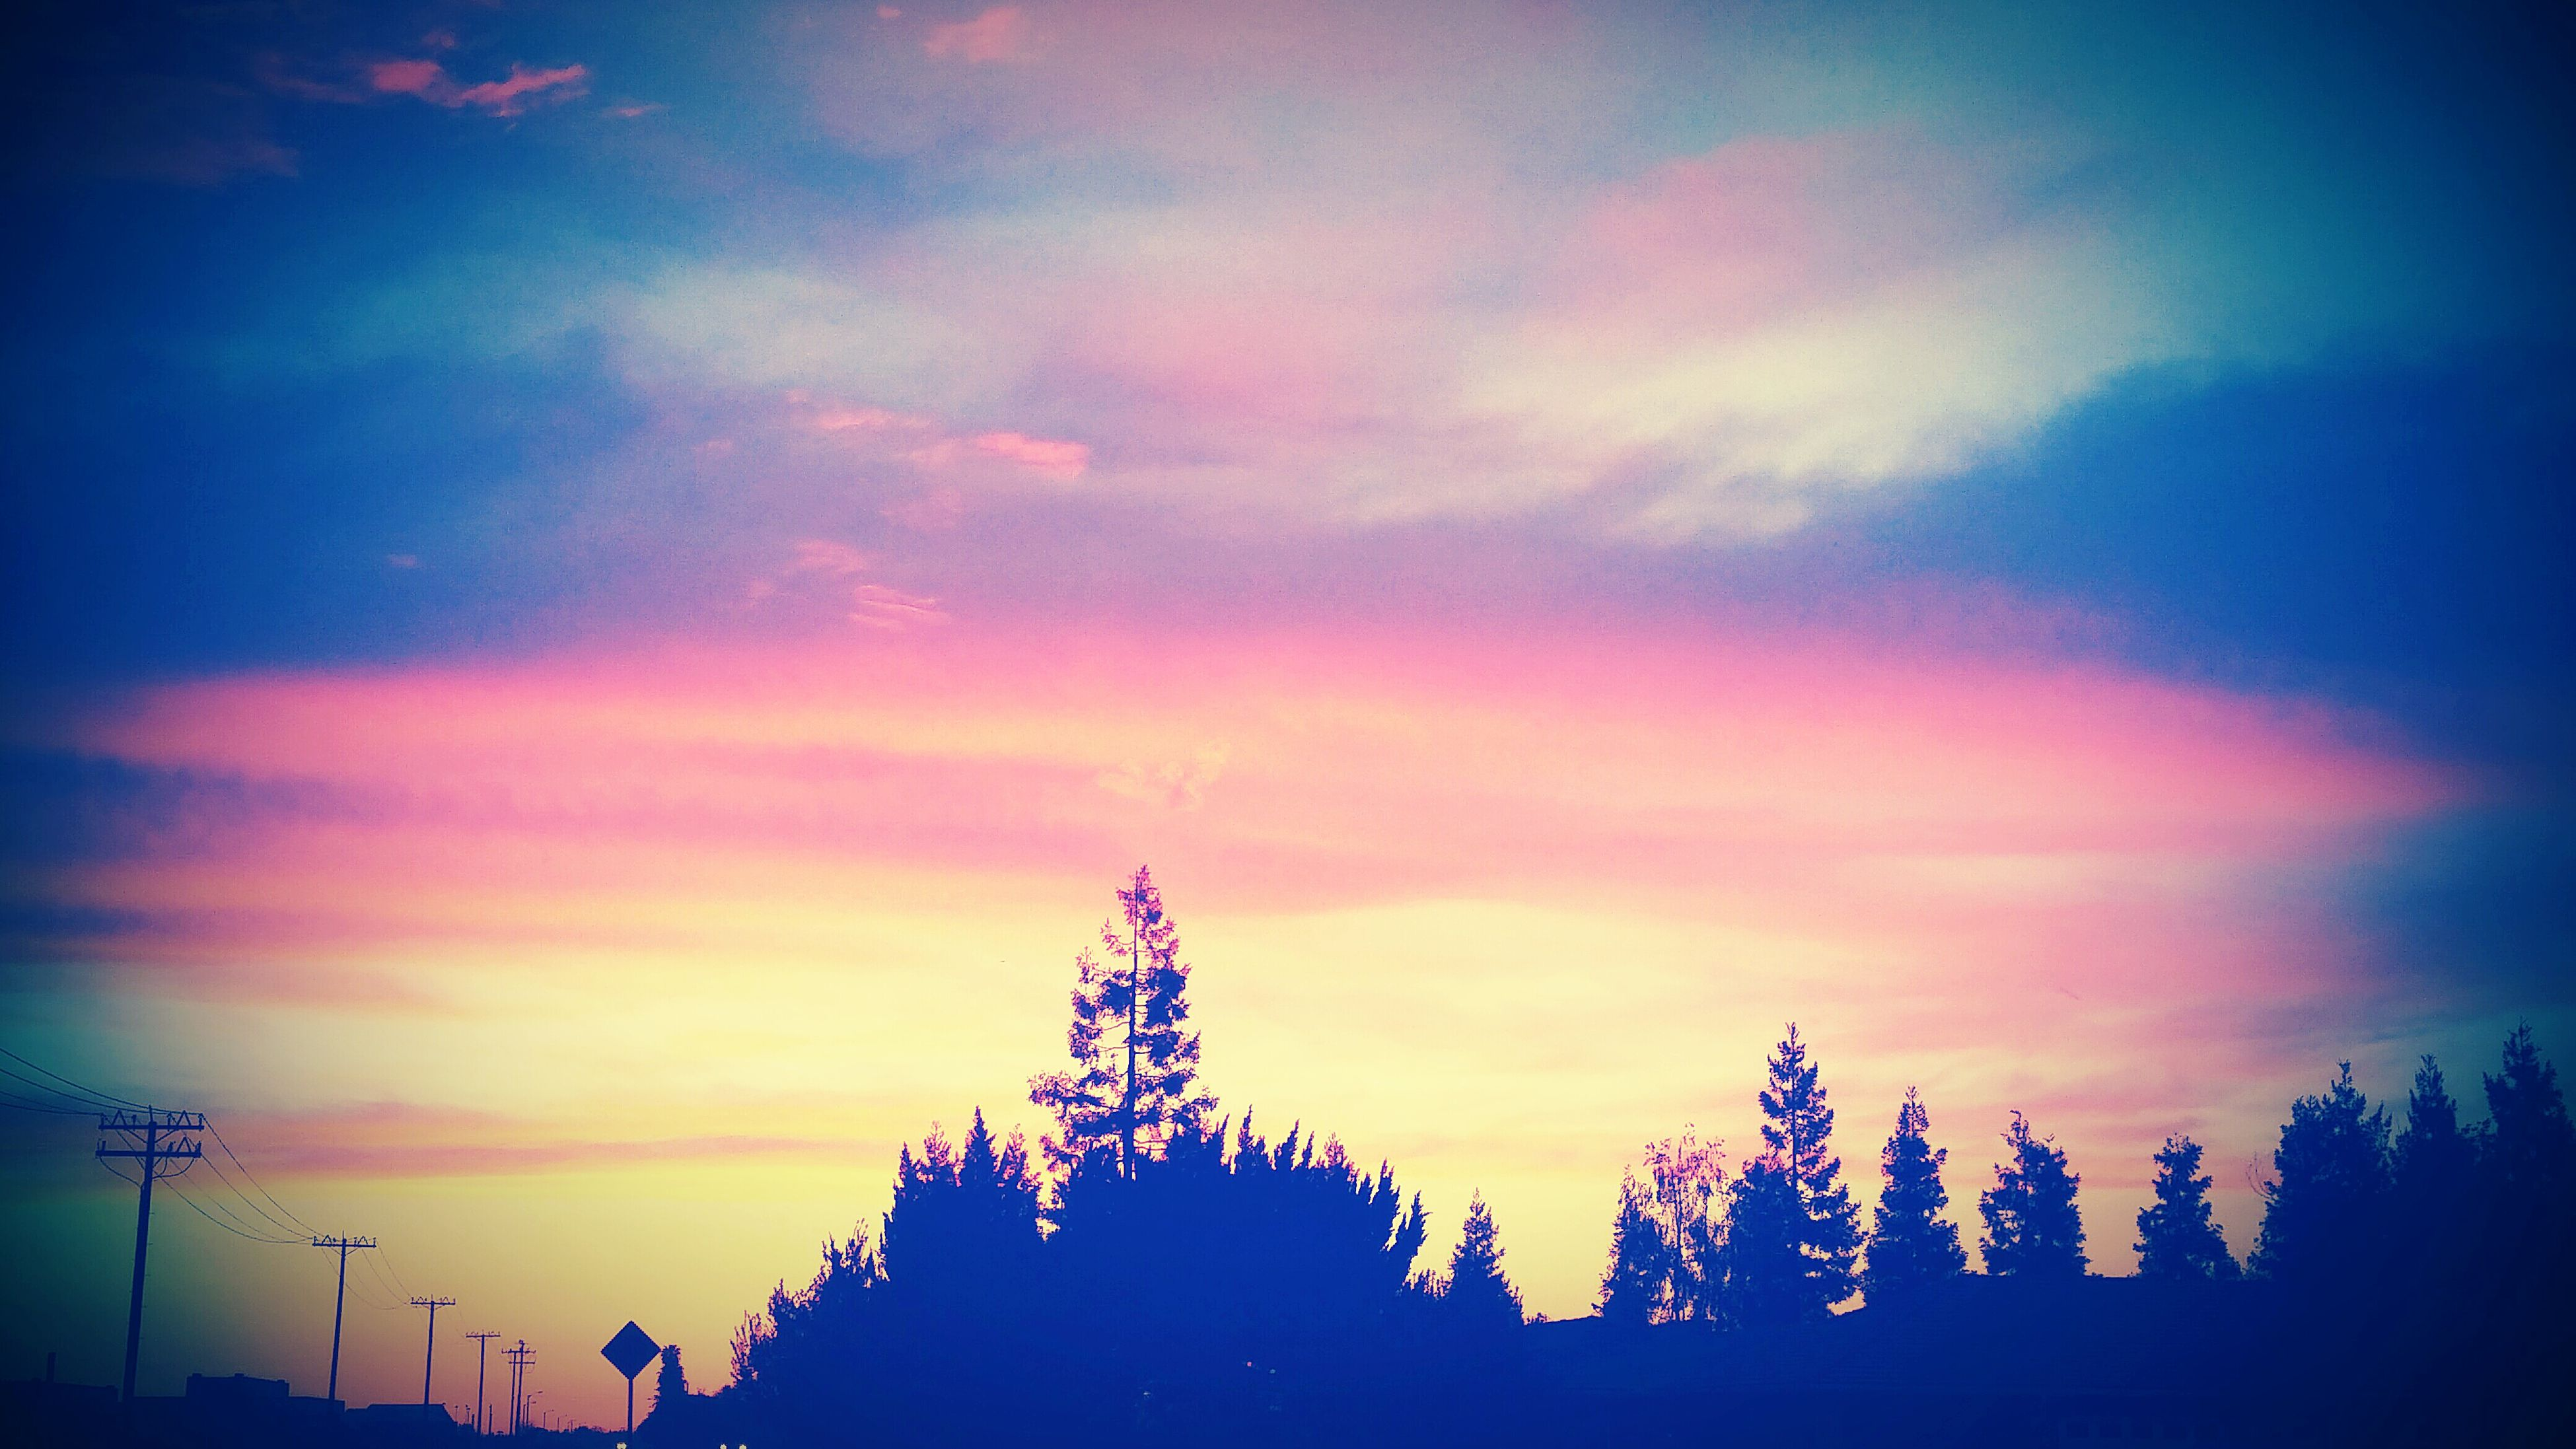 tree, silhouette, sunset, scenics, tranquil scene, sky, tranquility, cloud, beauty in nature, majestic, nature, atmosphere, high section, outline, solitude, cloud - sky, dramatic sky, growth, dark, atmospheric mood, pink, non-urban scene, outdoors, moody sky, multi colored, remote, pink color, no people, romantic sky, cloudscape